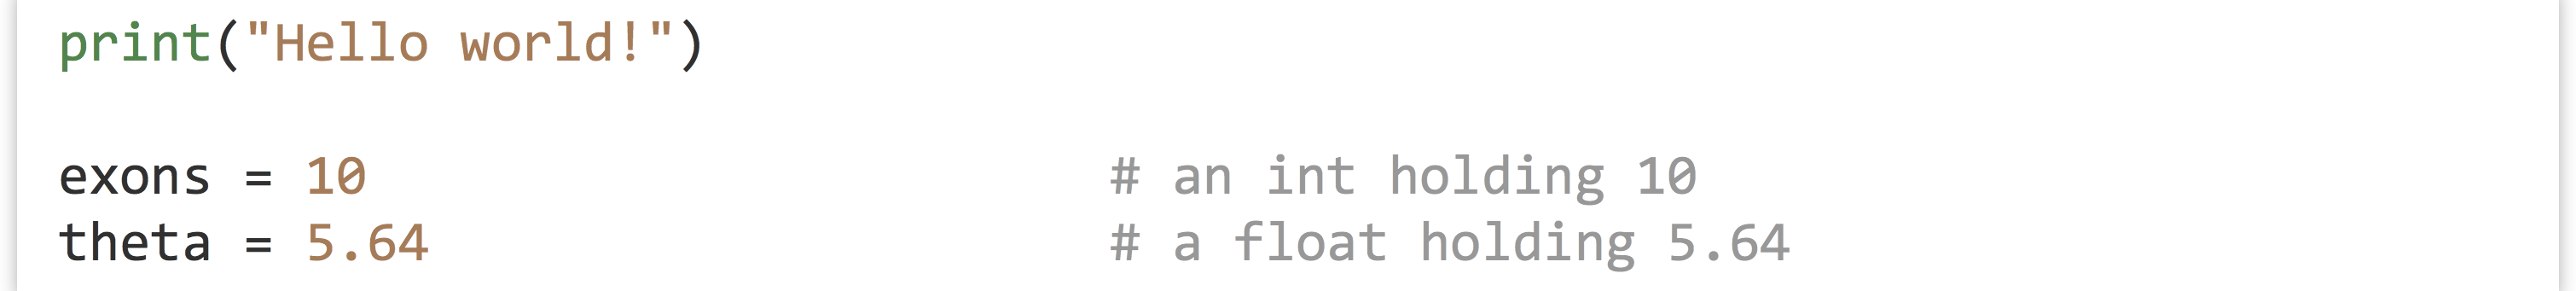 II.2_1_py_5_int_float